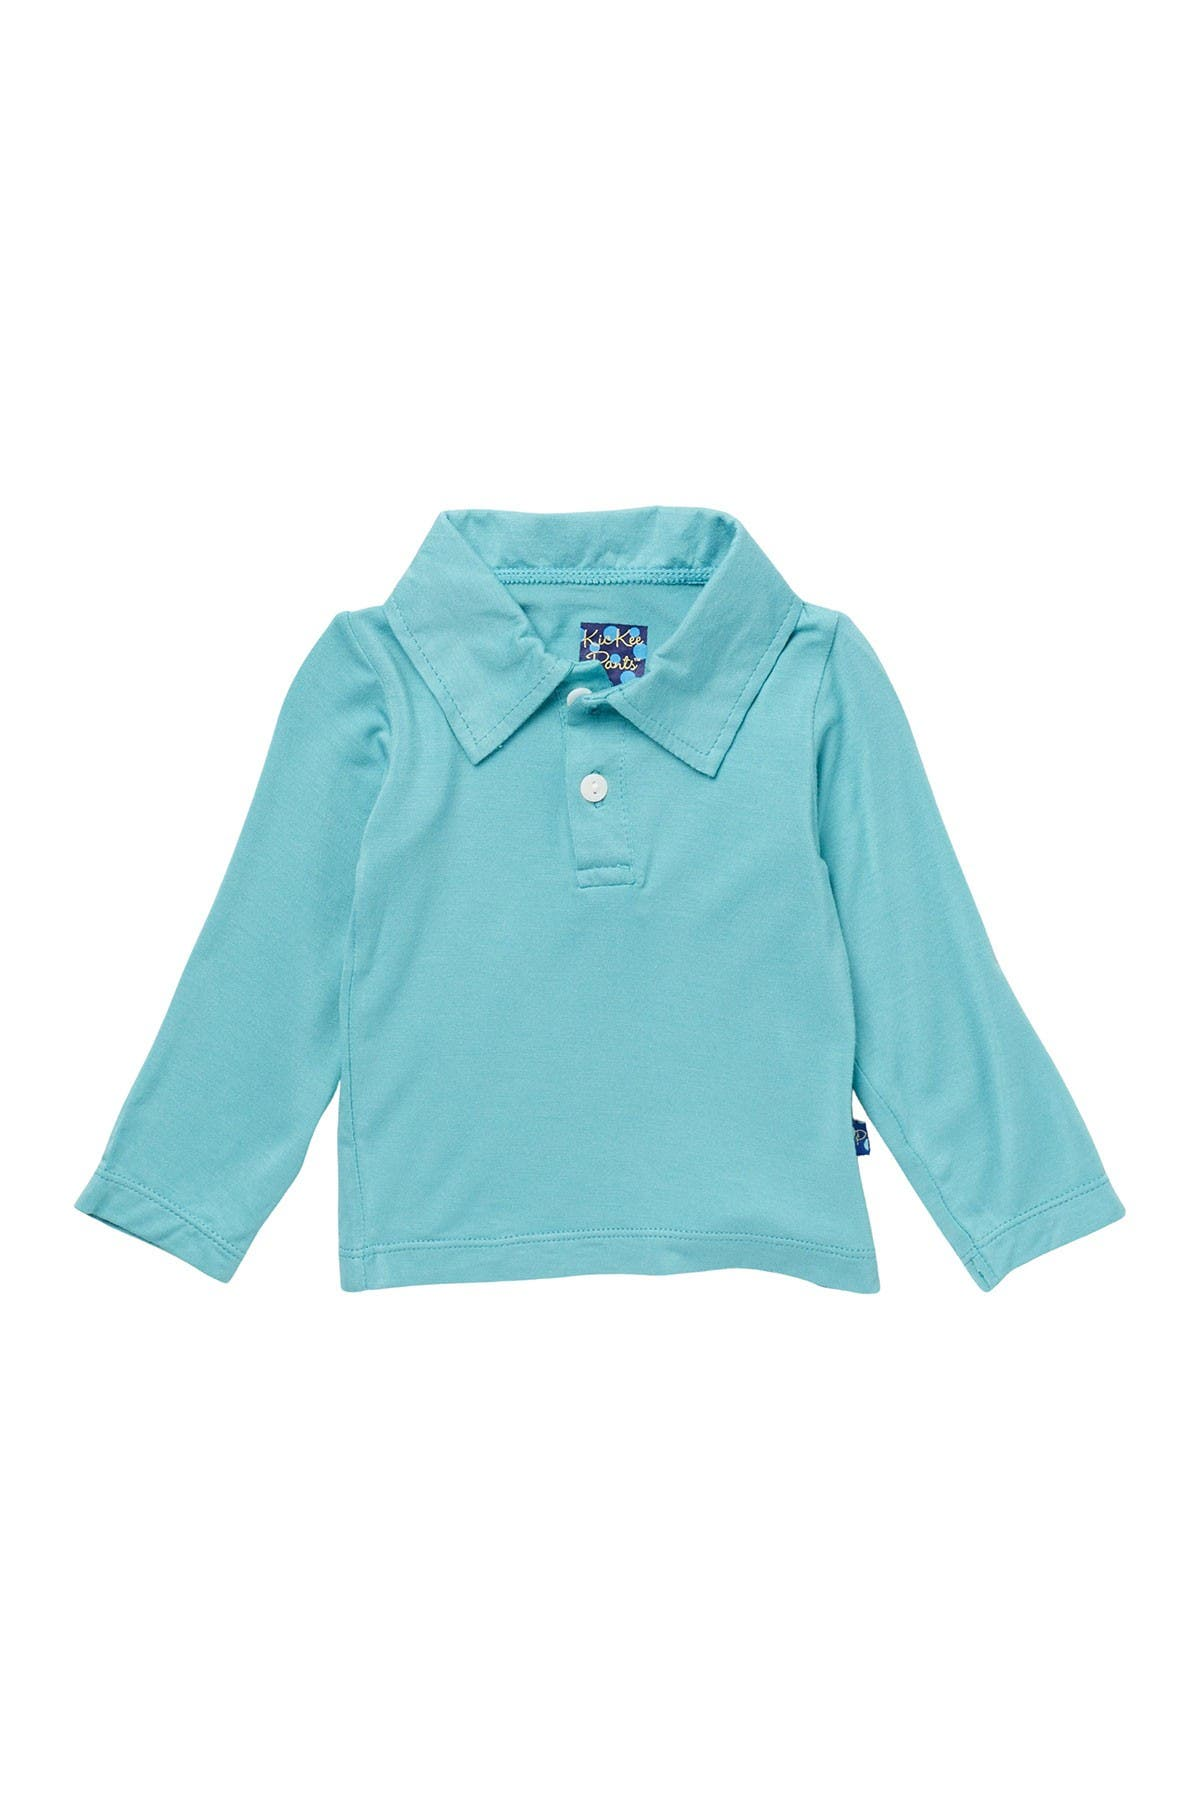 Image of KicKee Pants Solid Long Sleeve Polo Shirt